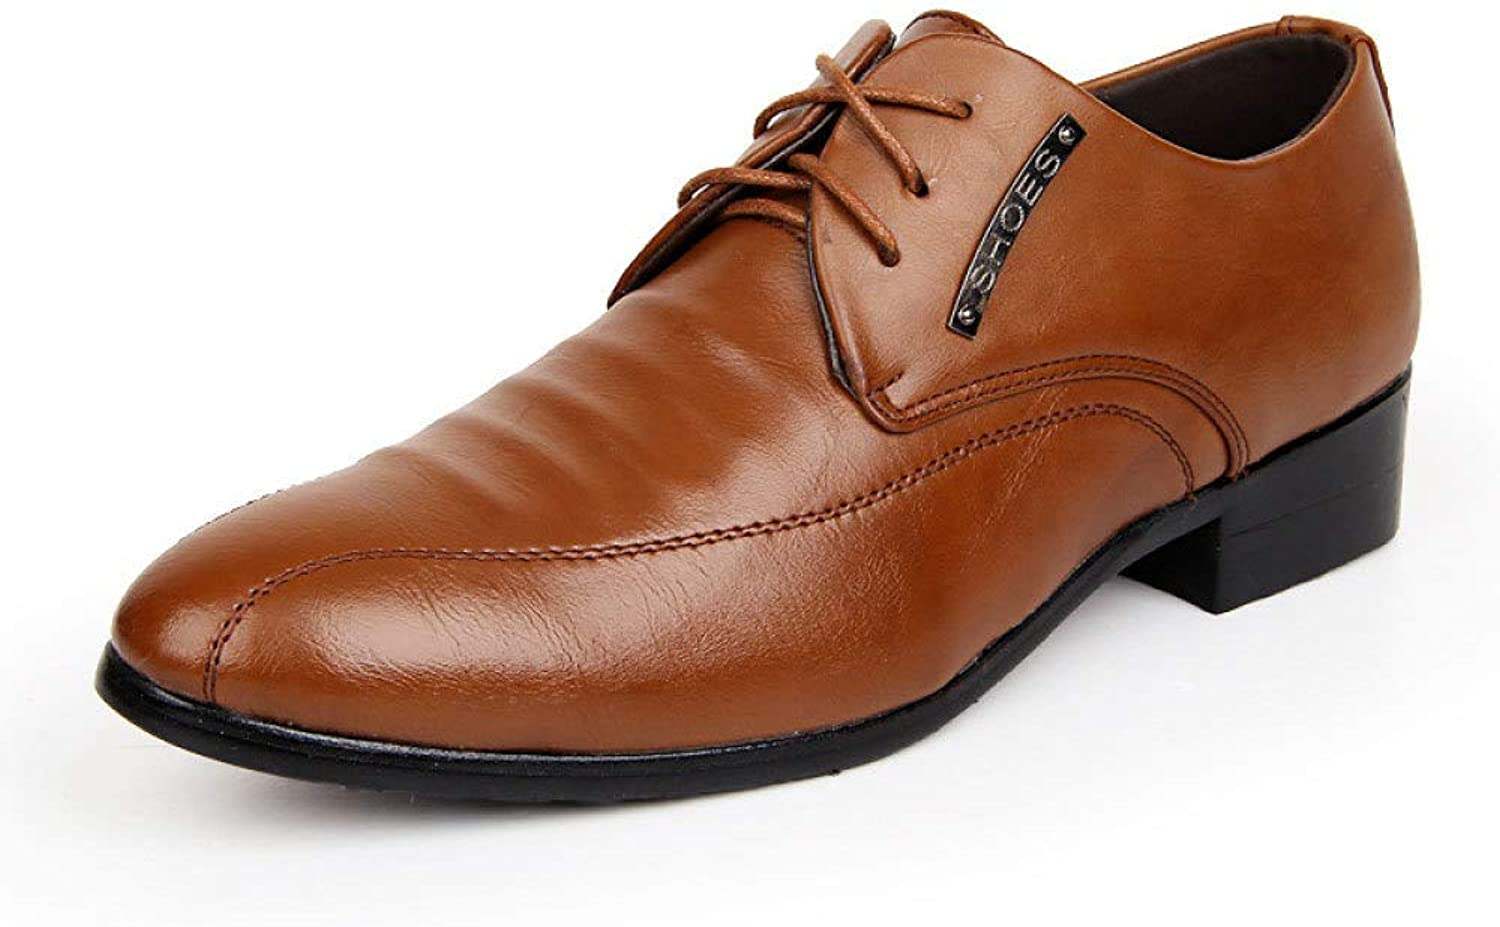 DSFGHE Men Simple Business shoes Fashion Low-top shoes Leather shoes